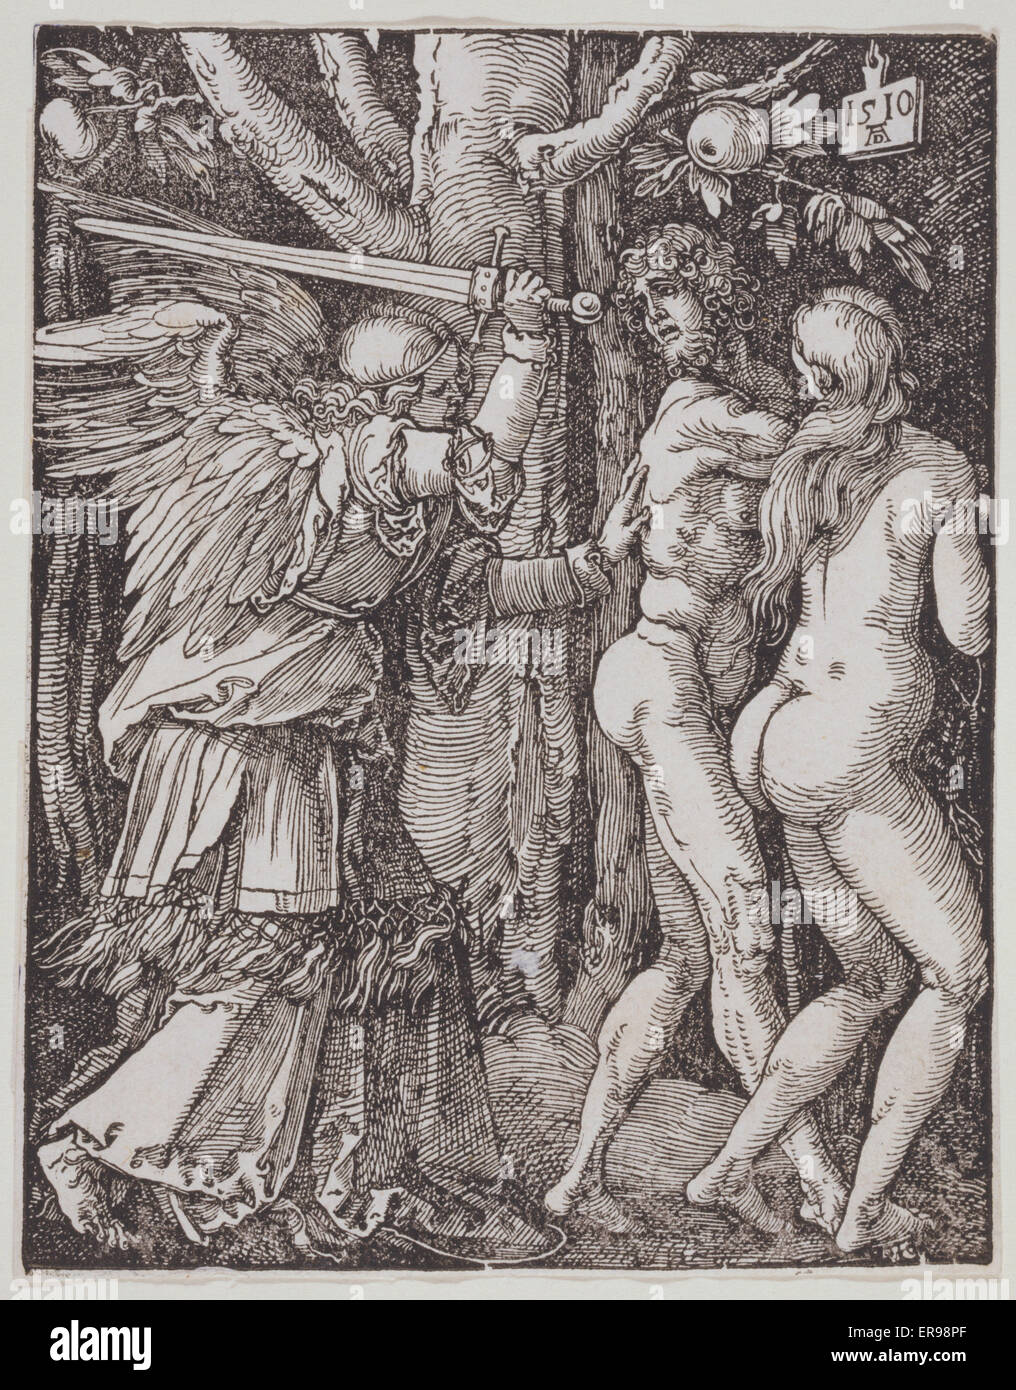 Small Passion. The expulsion from Paradise. Date 1510. - Stock Image